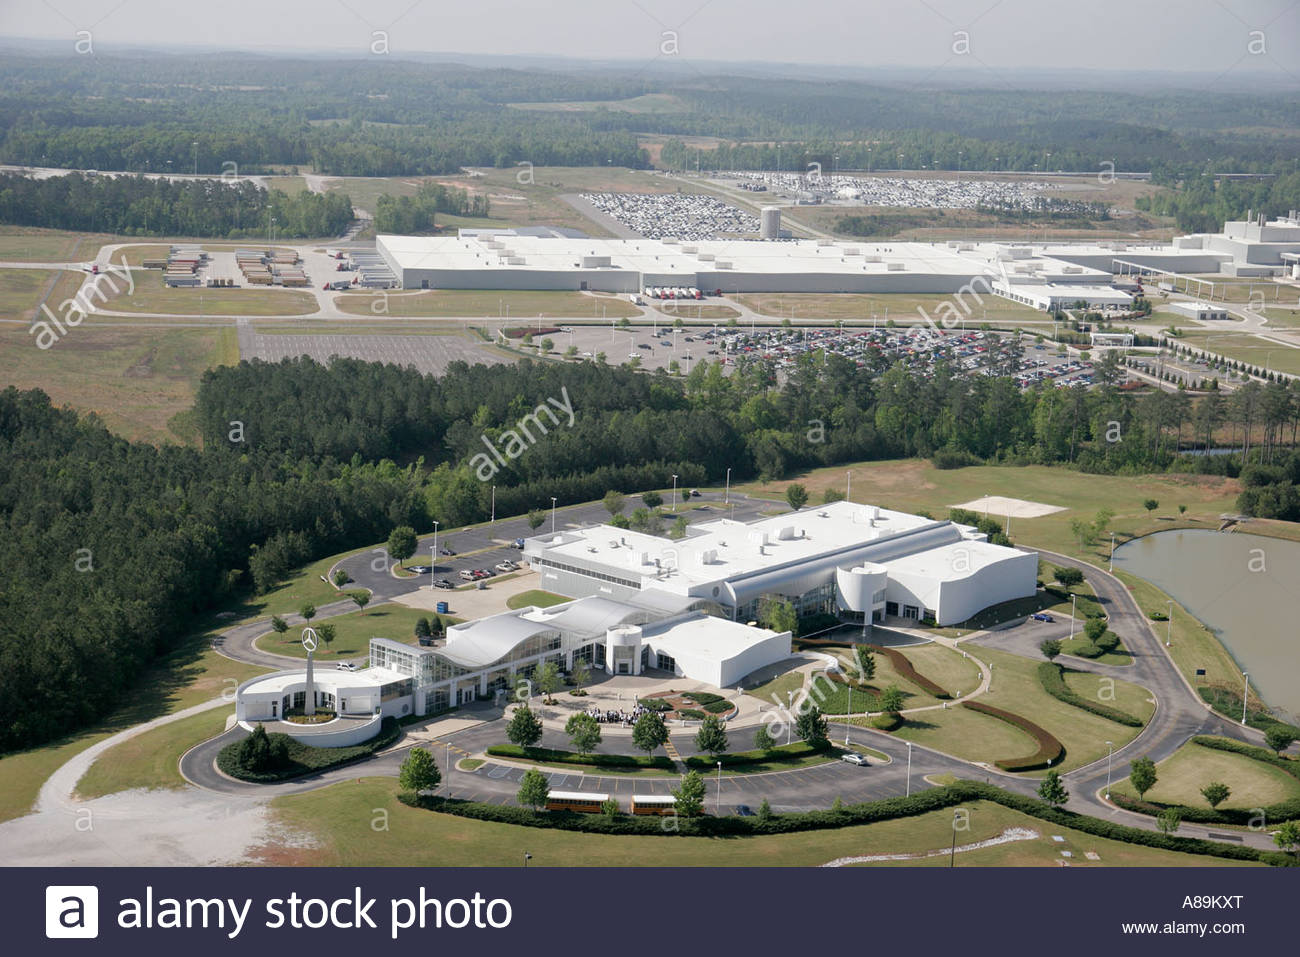 Alabama Vance Mercedes Benz German SUV manufacturing plant ...